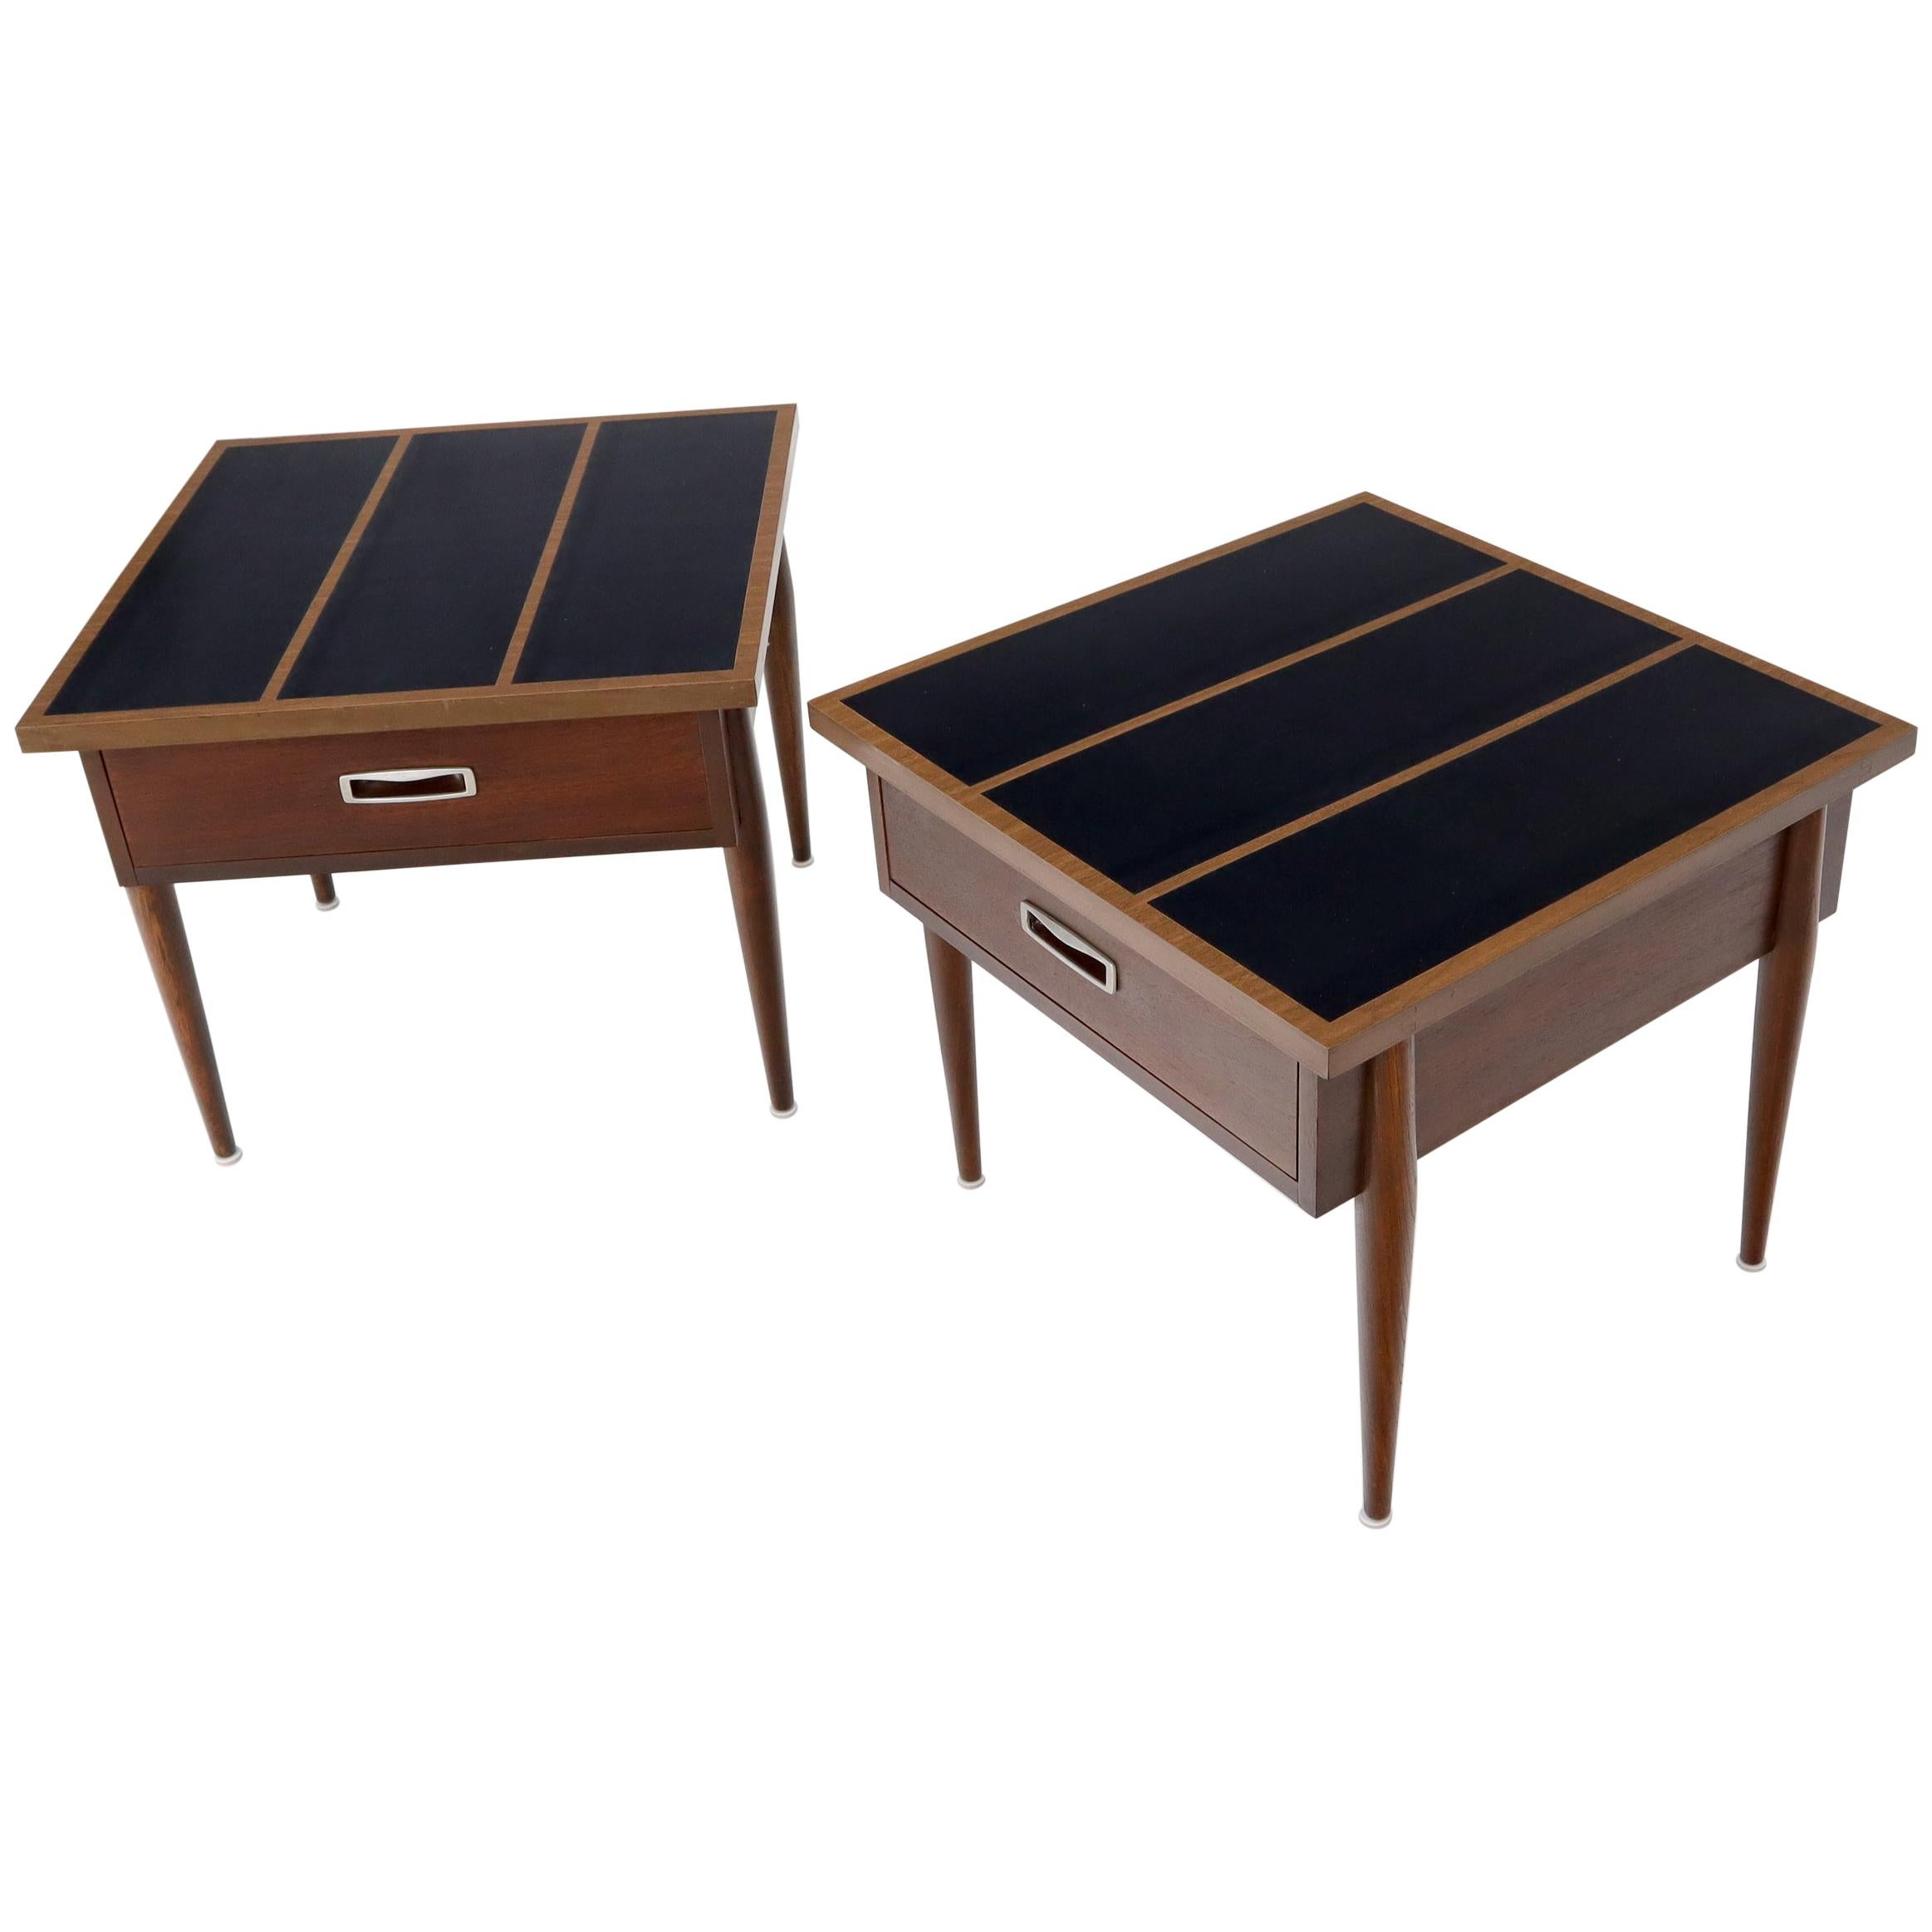 Pair of Walnut One-Drawer Side End Tables with Laminated Tops Tapered Legs